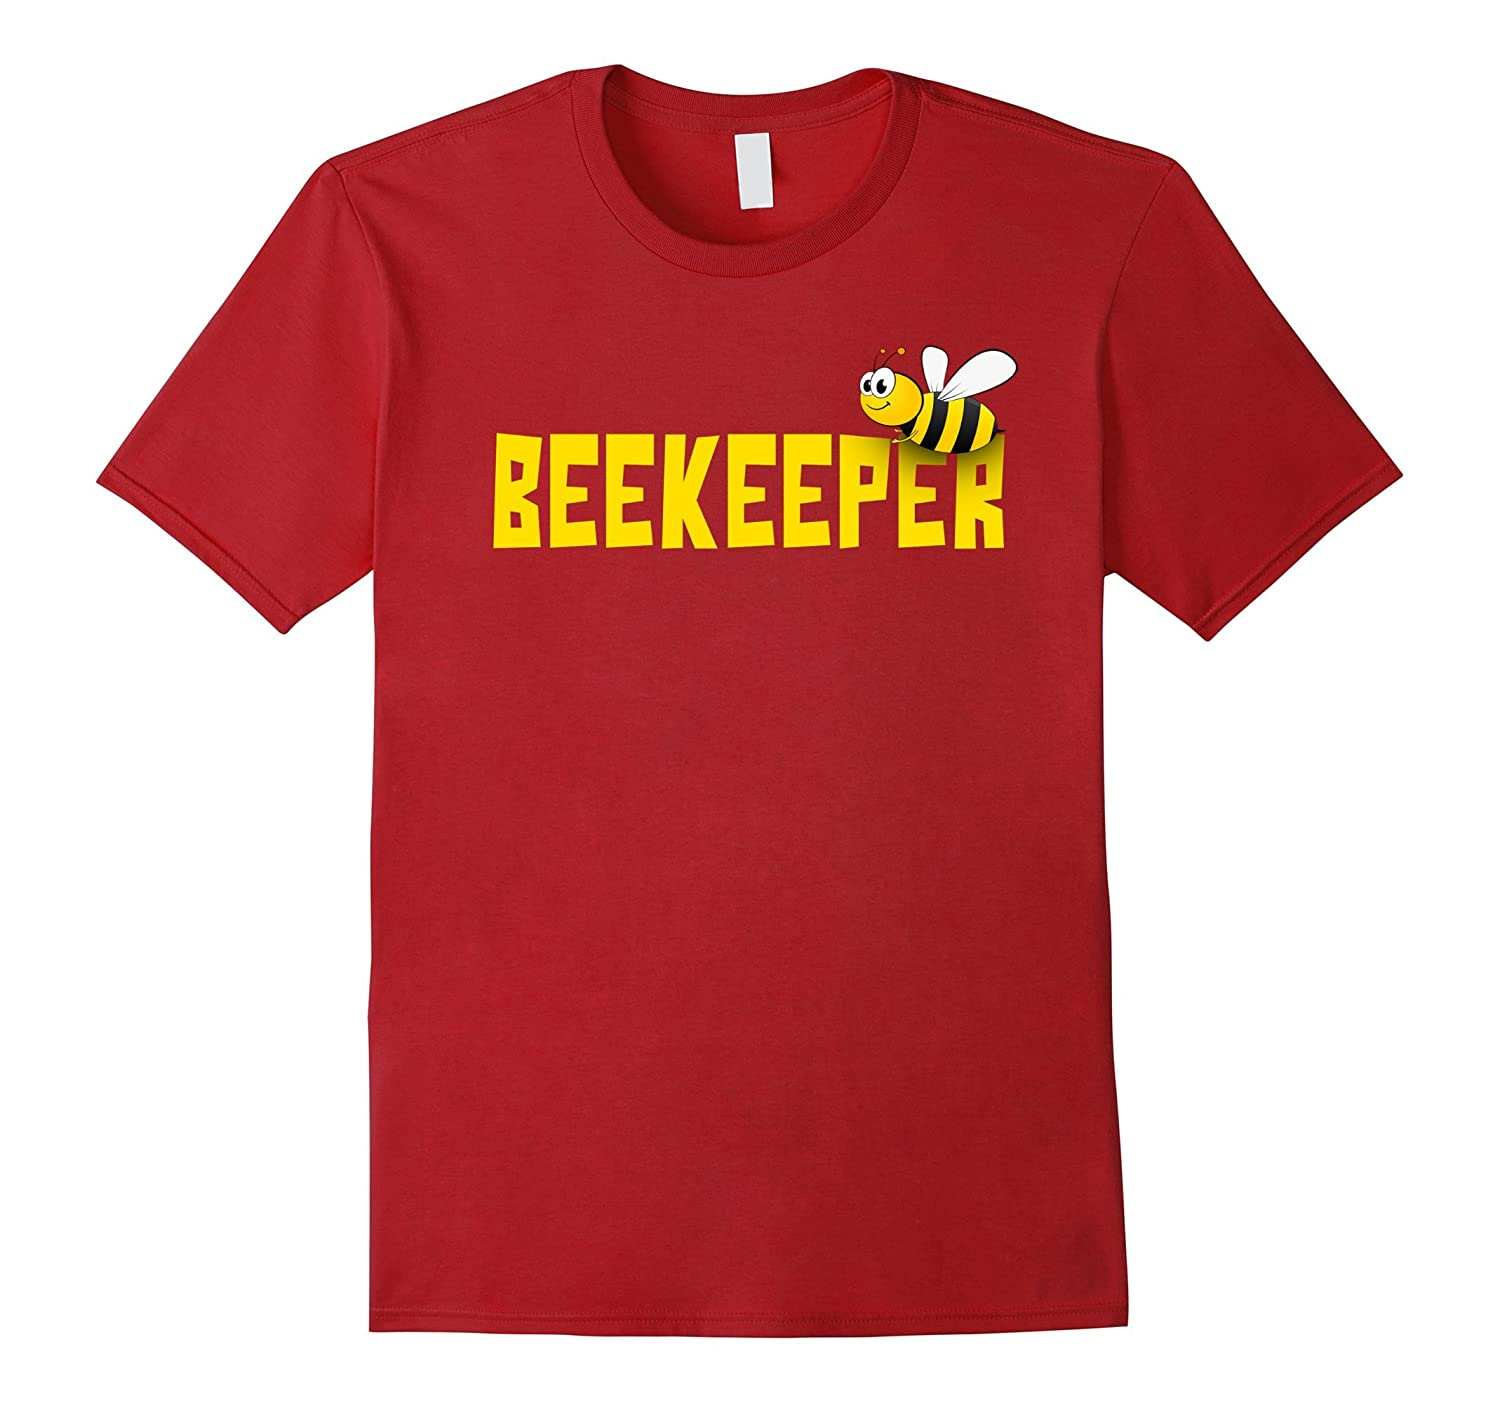 Beekeeper Funny Cute Beekeeping T shirt-Awarplus